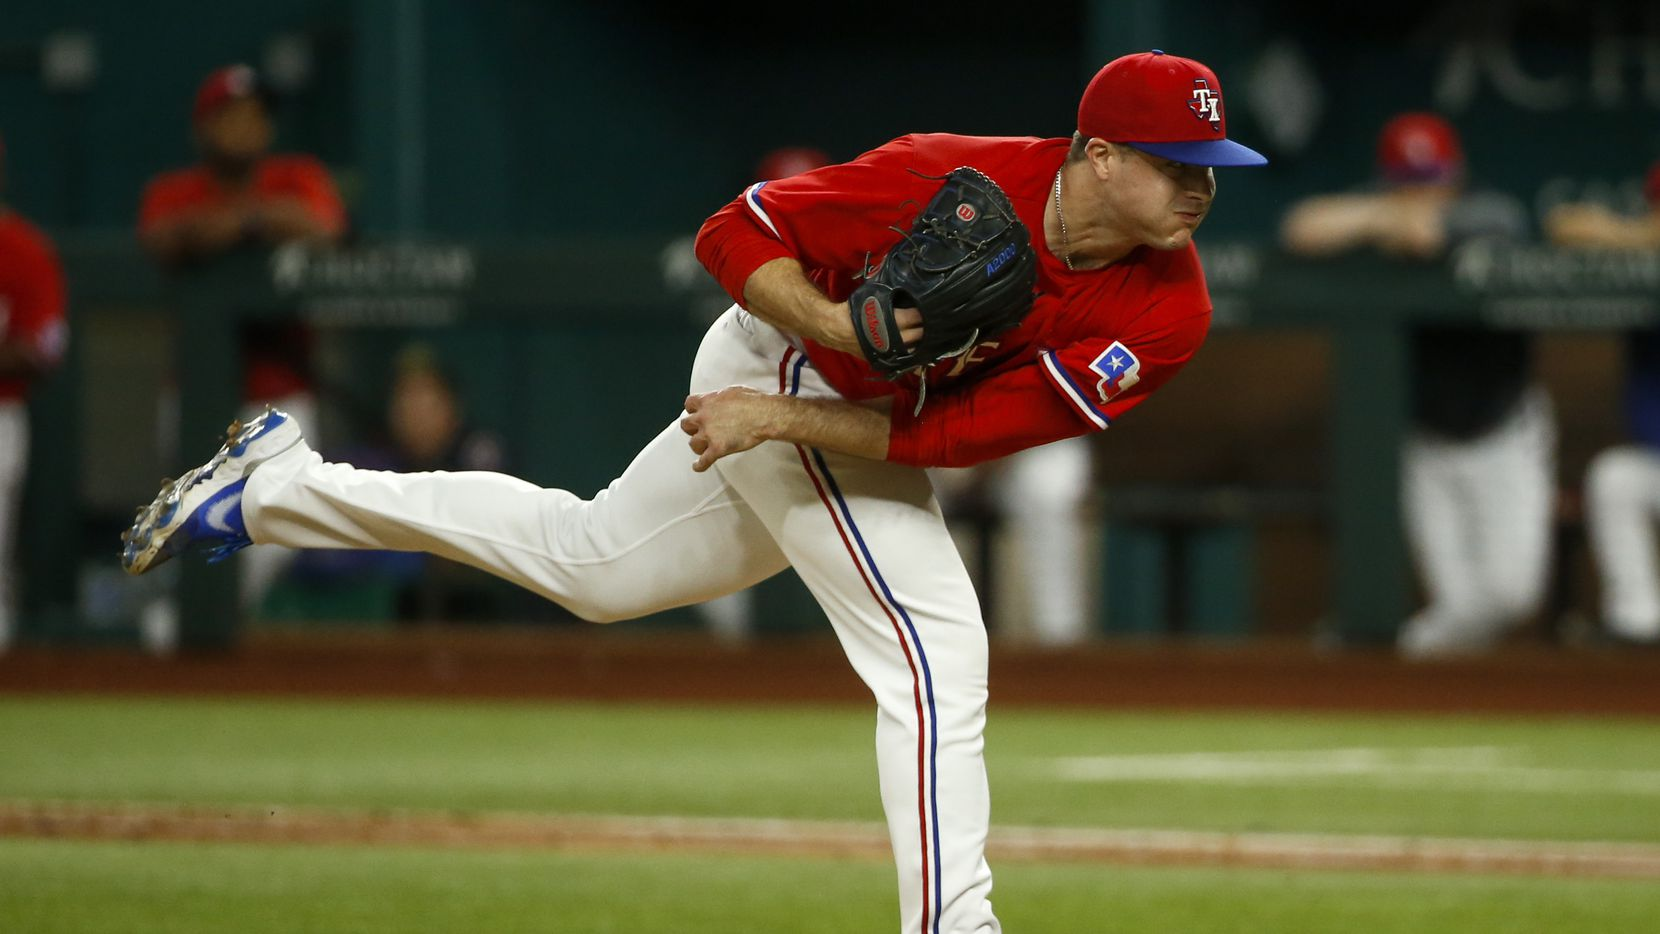 Texas Rangers relief pitcher John King (60) throws the ball during the eighth inning against the Kansas City Royals at Globe Life Field on Friday, June 25, 2021, in Arlington.